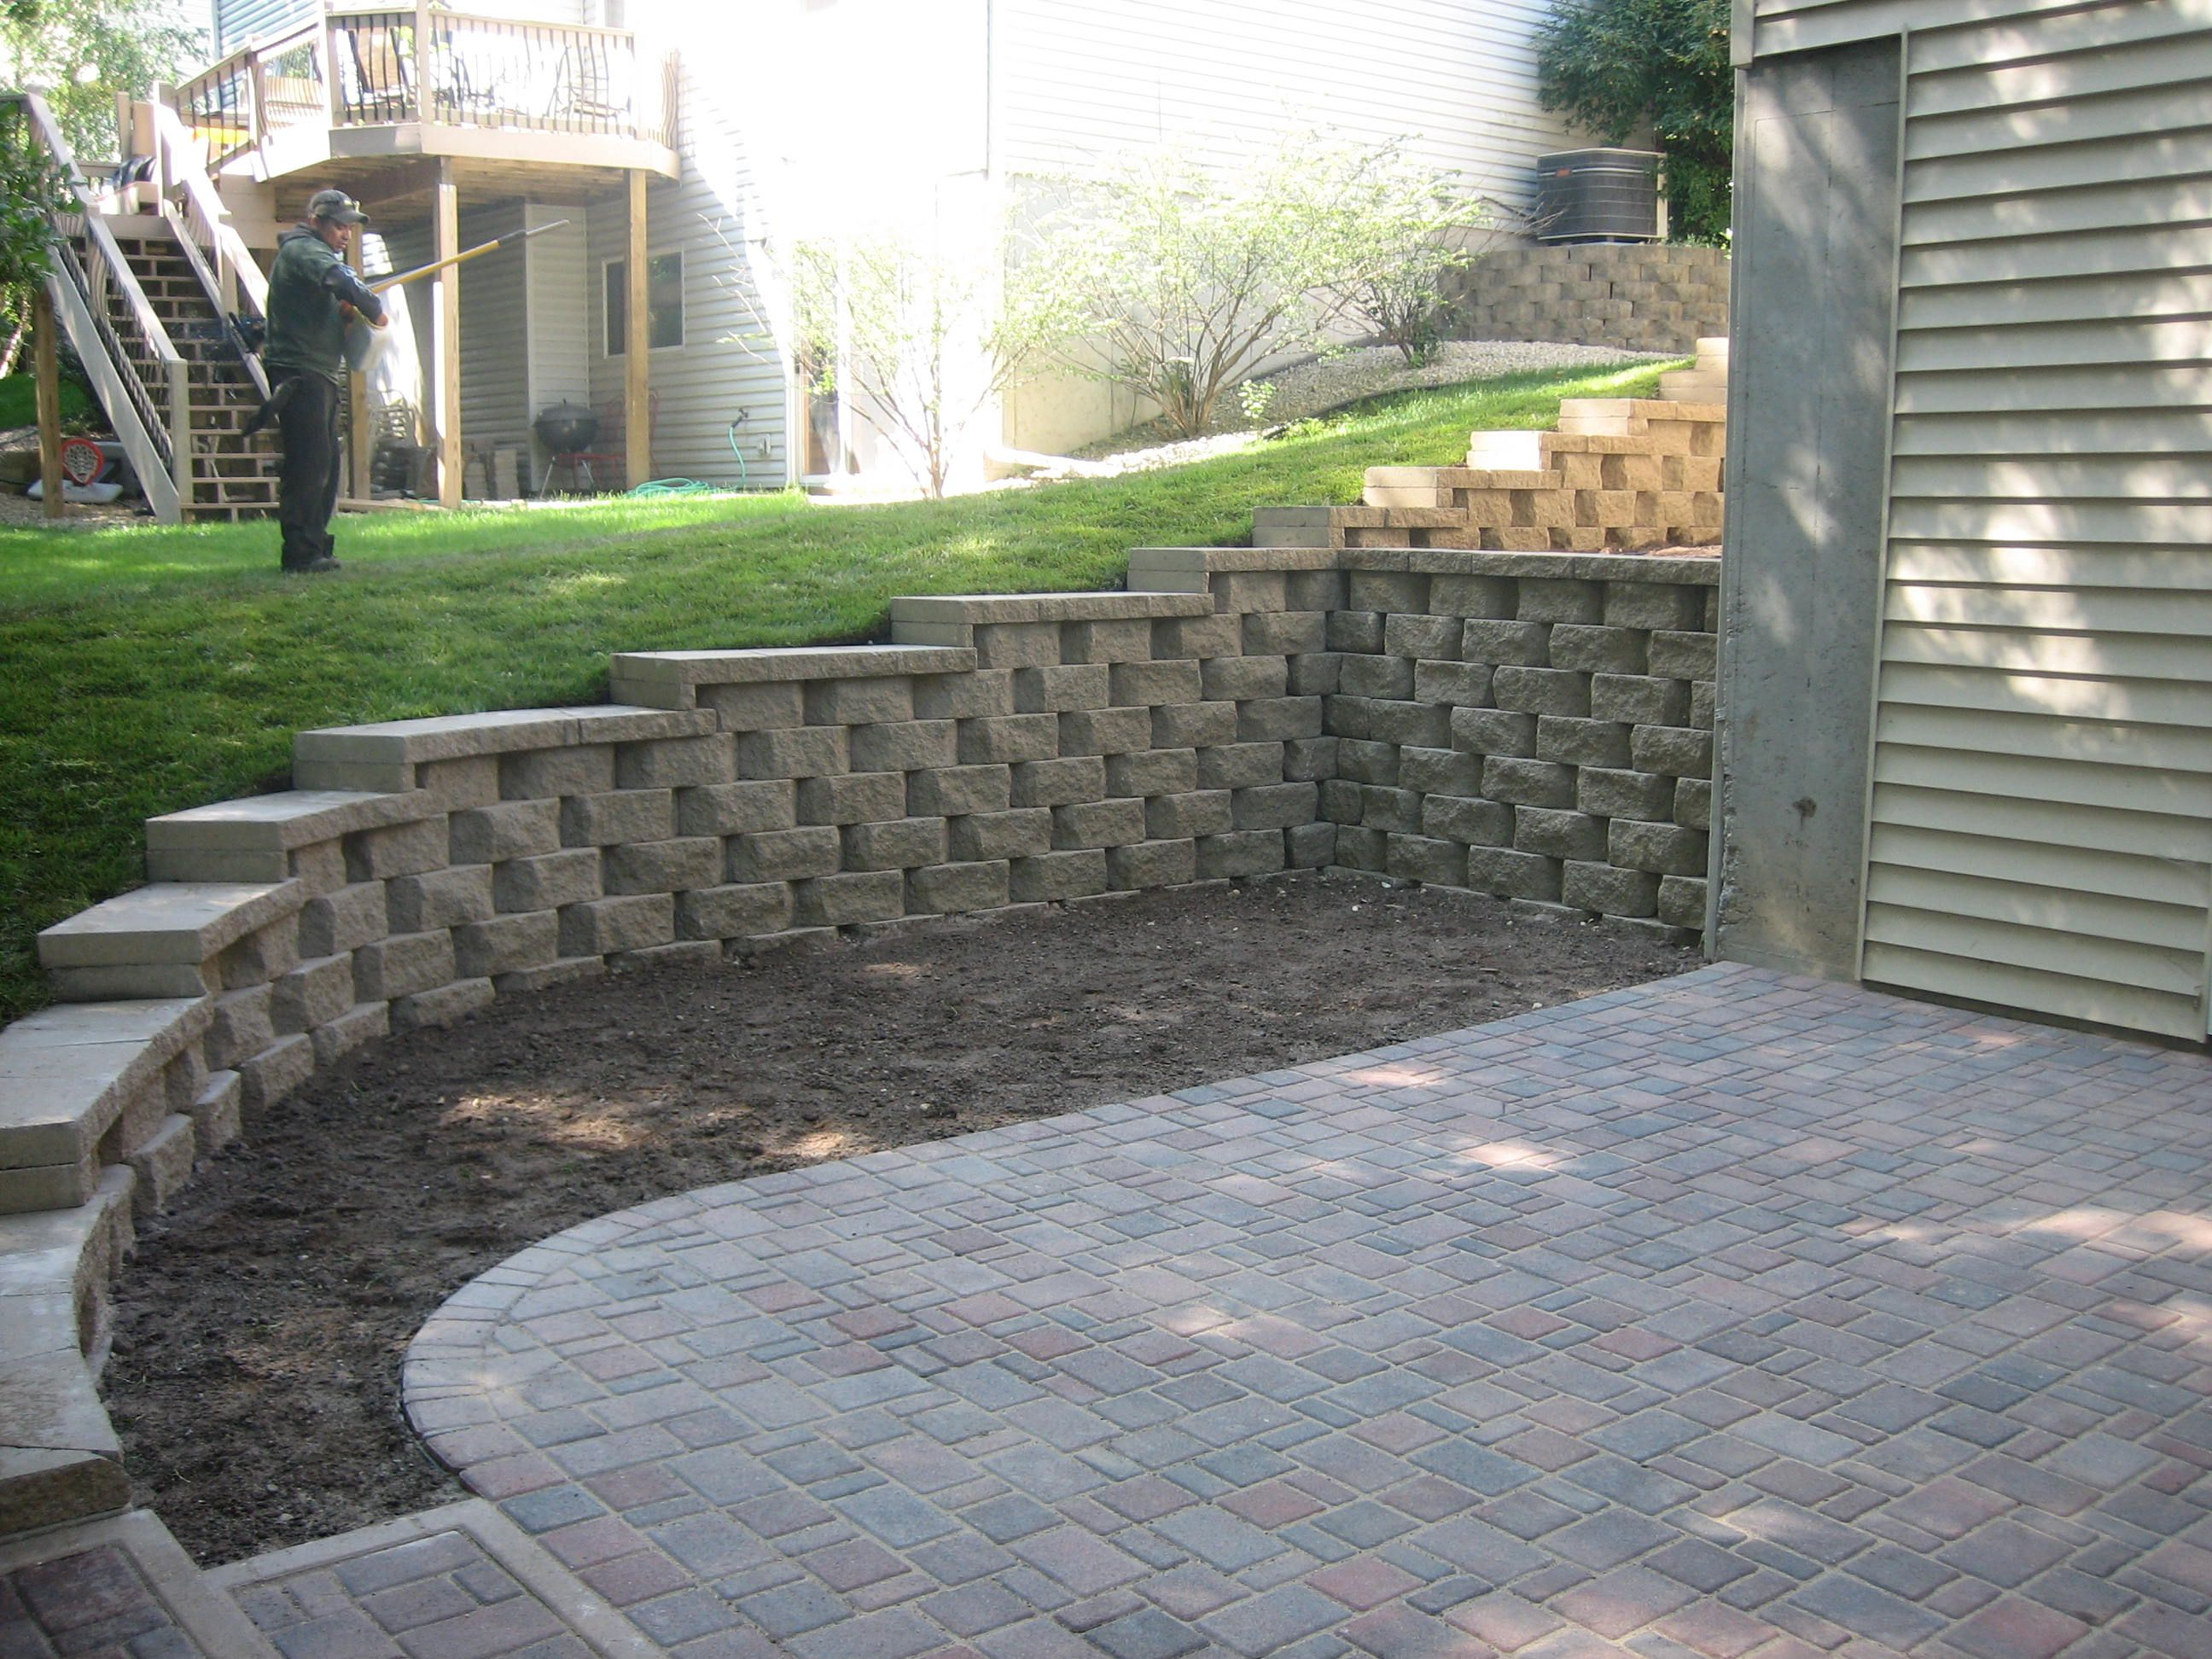 Delightful Anchor Retaining Wall And Cap Installed Along With A Borgert Paver Patio.